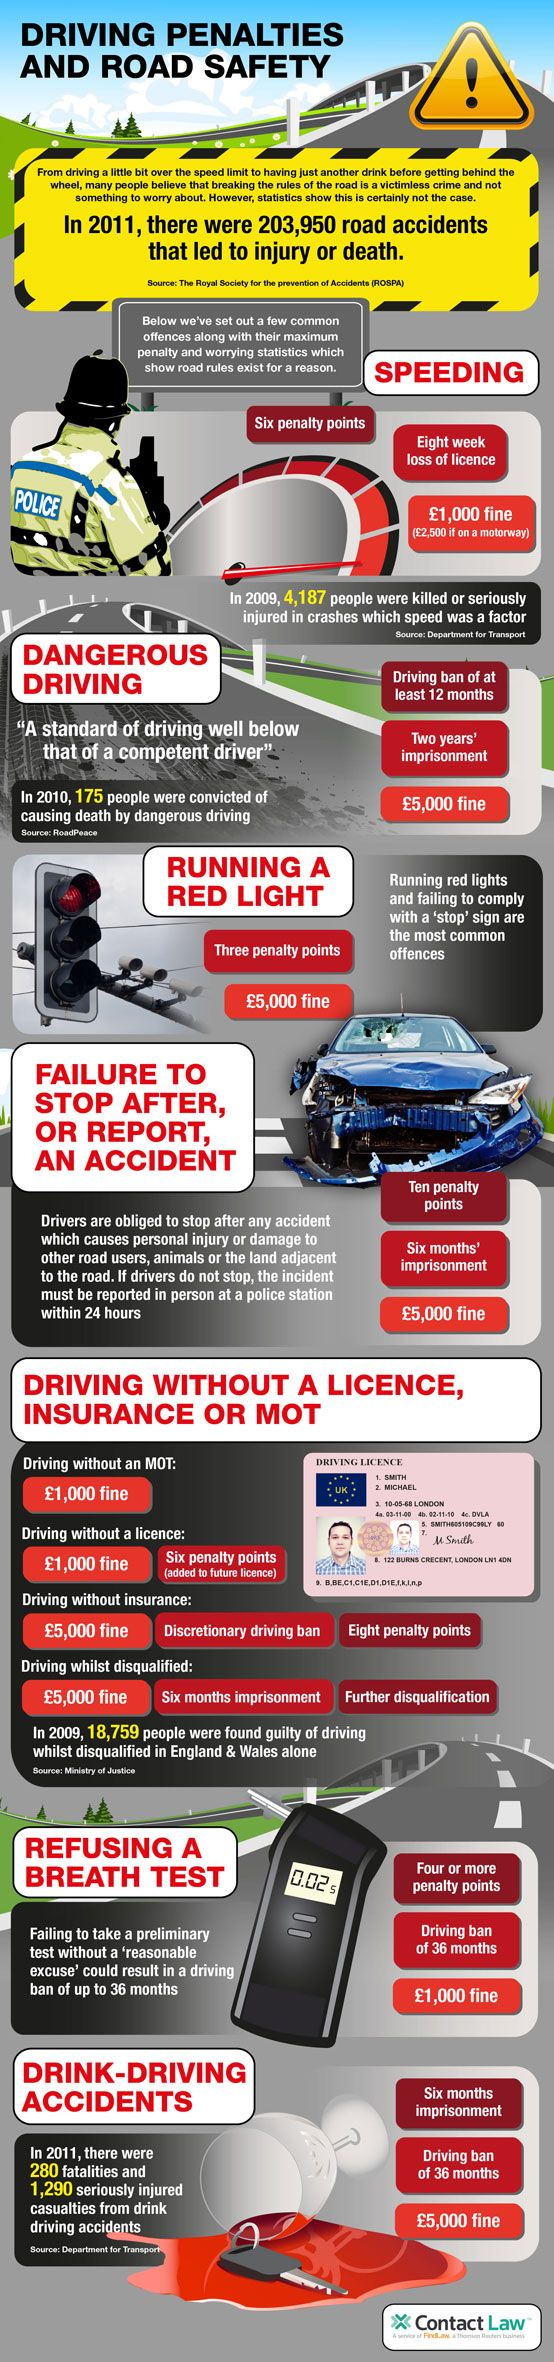 Motoring offences infographic Find a solicitor Contact